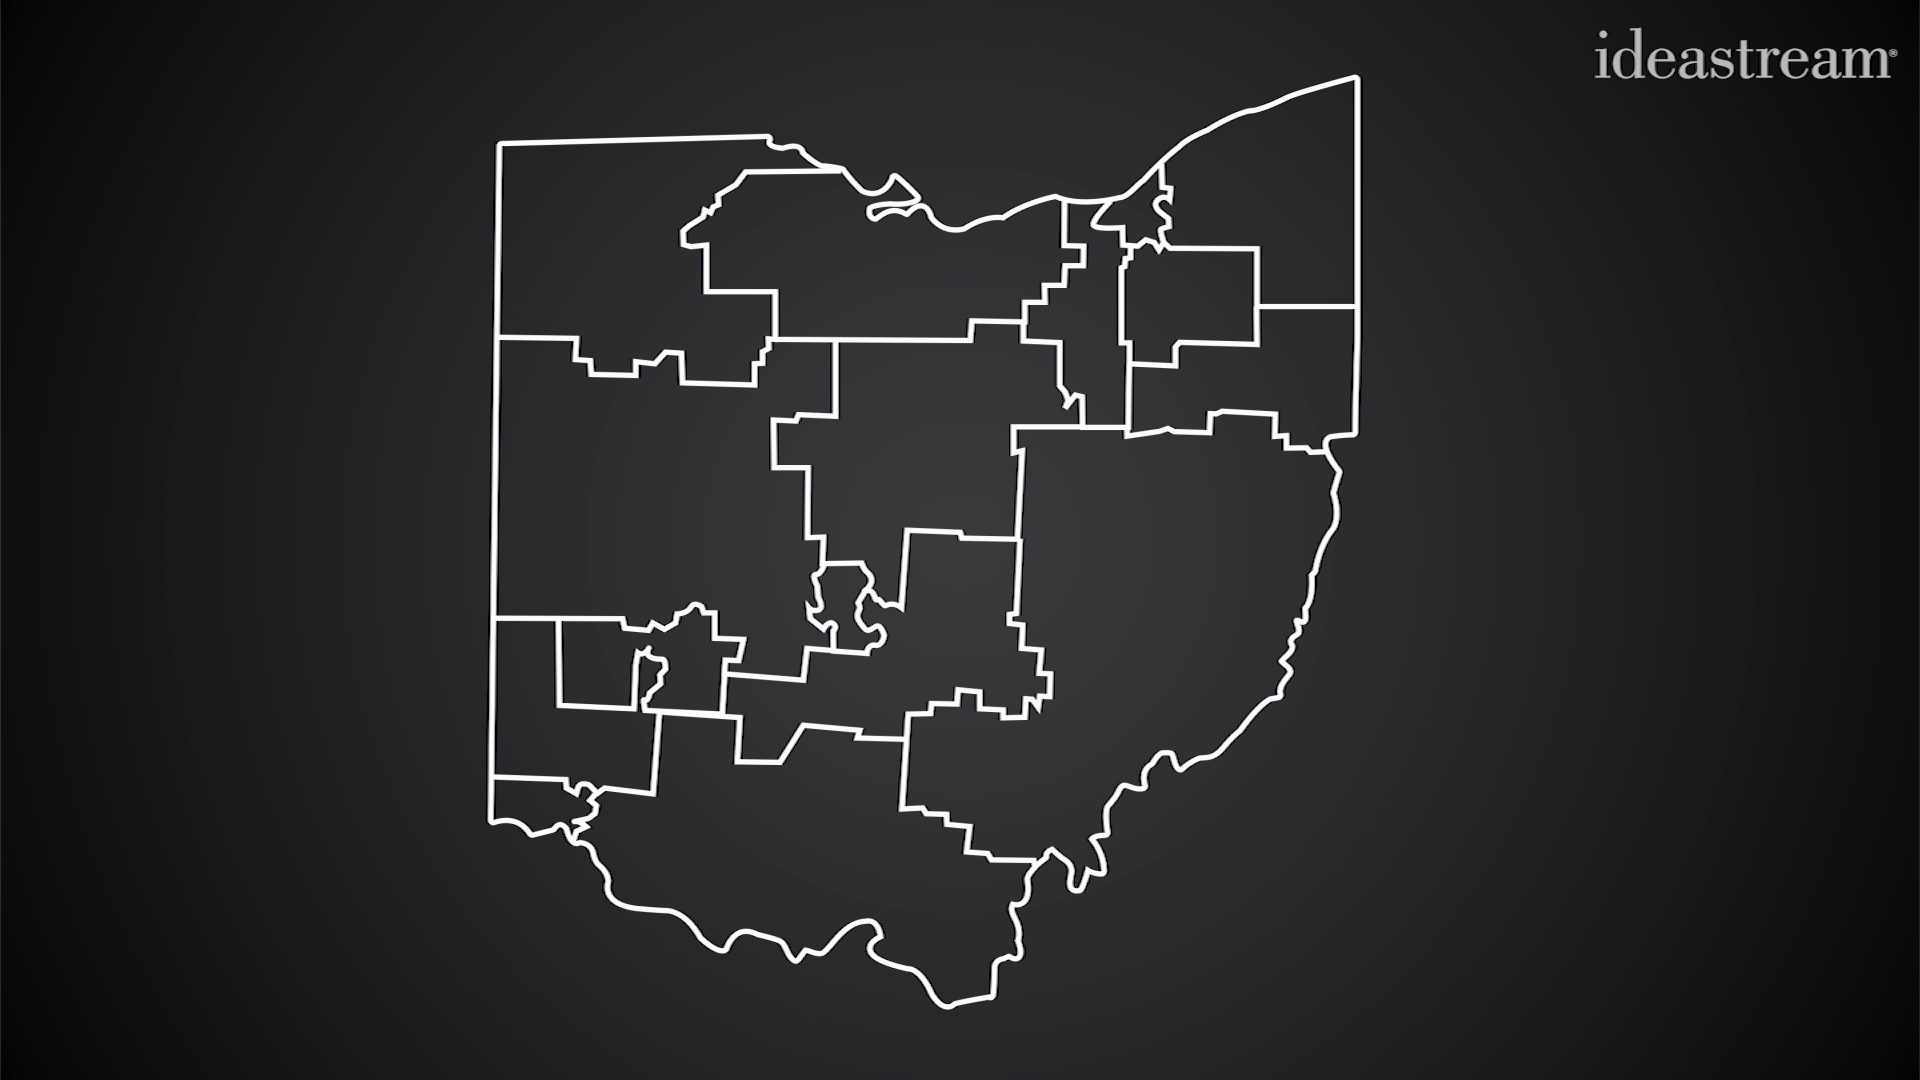 Ohio S Gerrymandered Congressional Districts News Ideastream